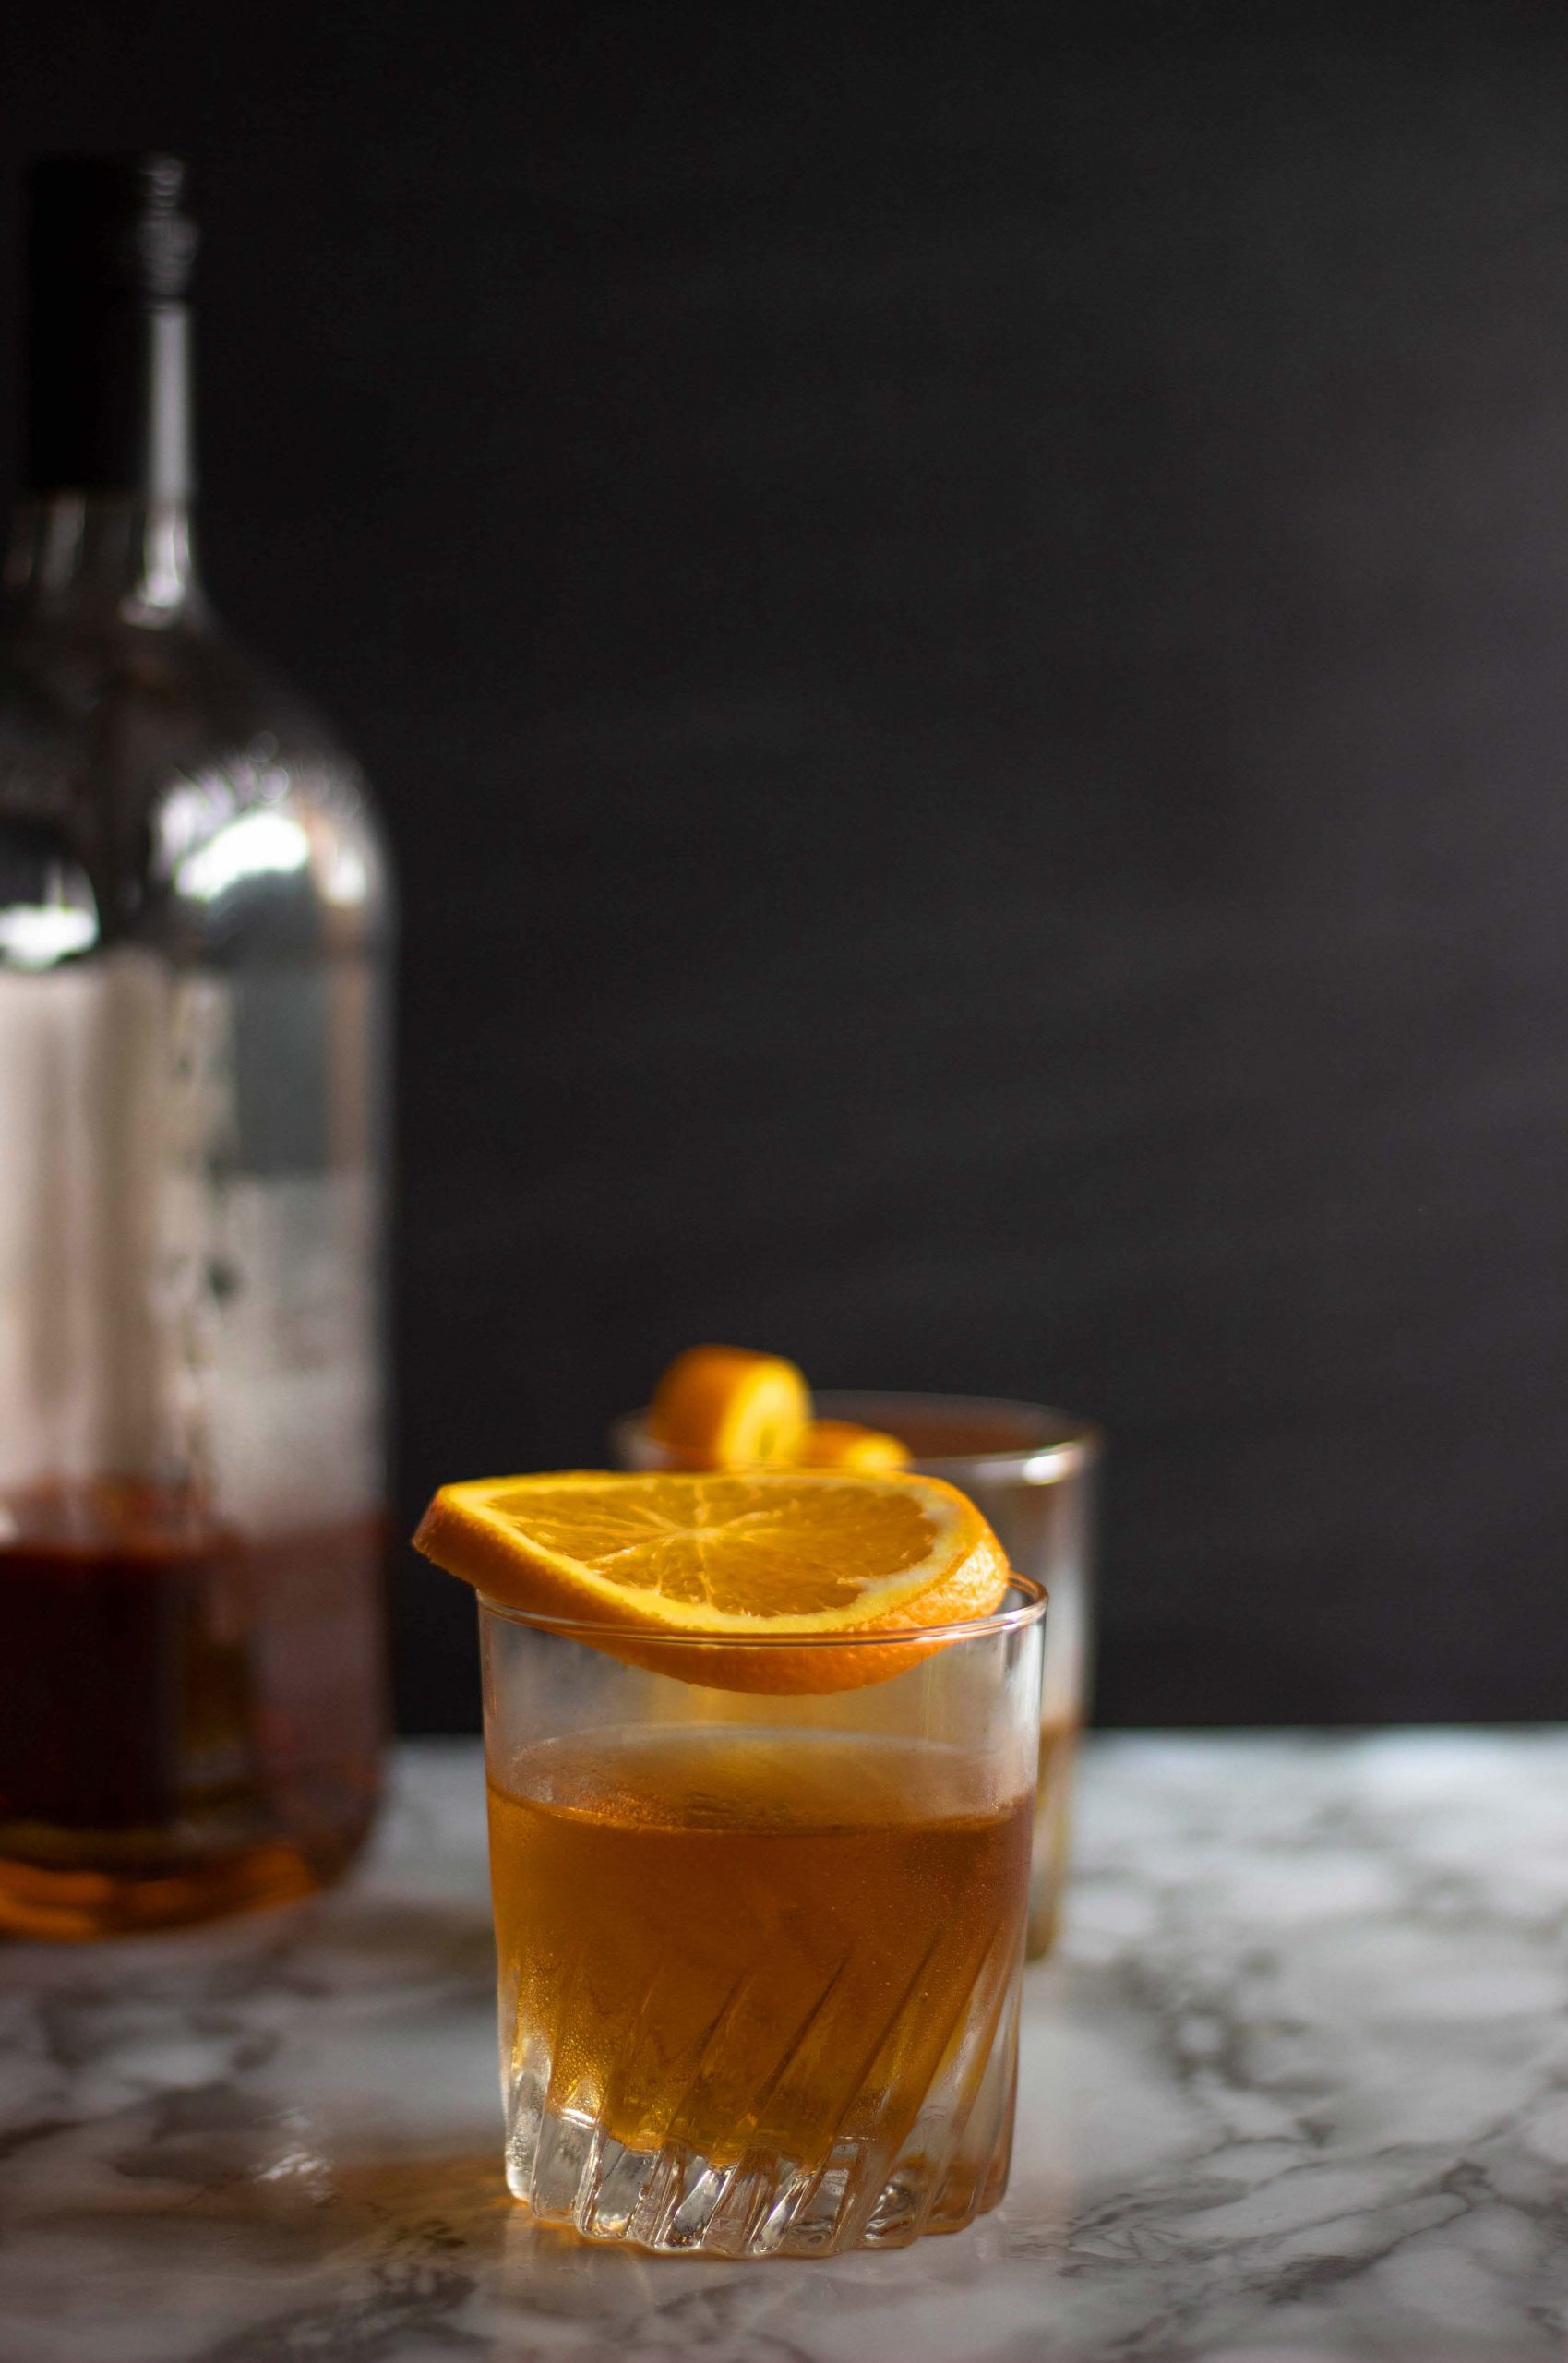 A chilled glass of an Old Fashioned with an orange slice